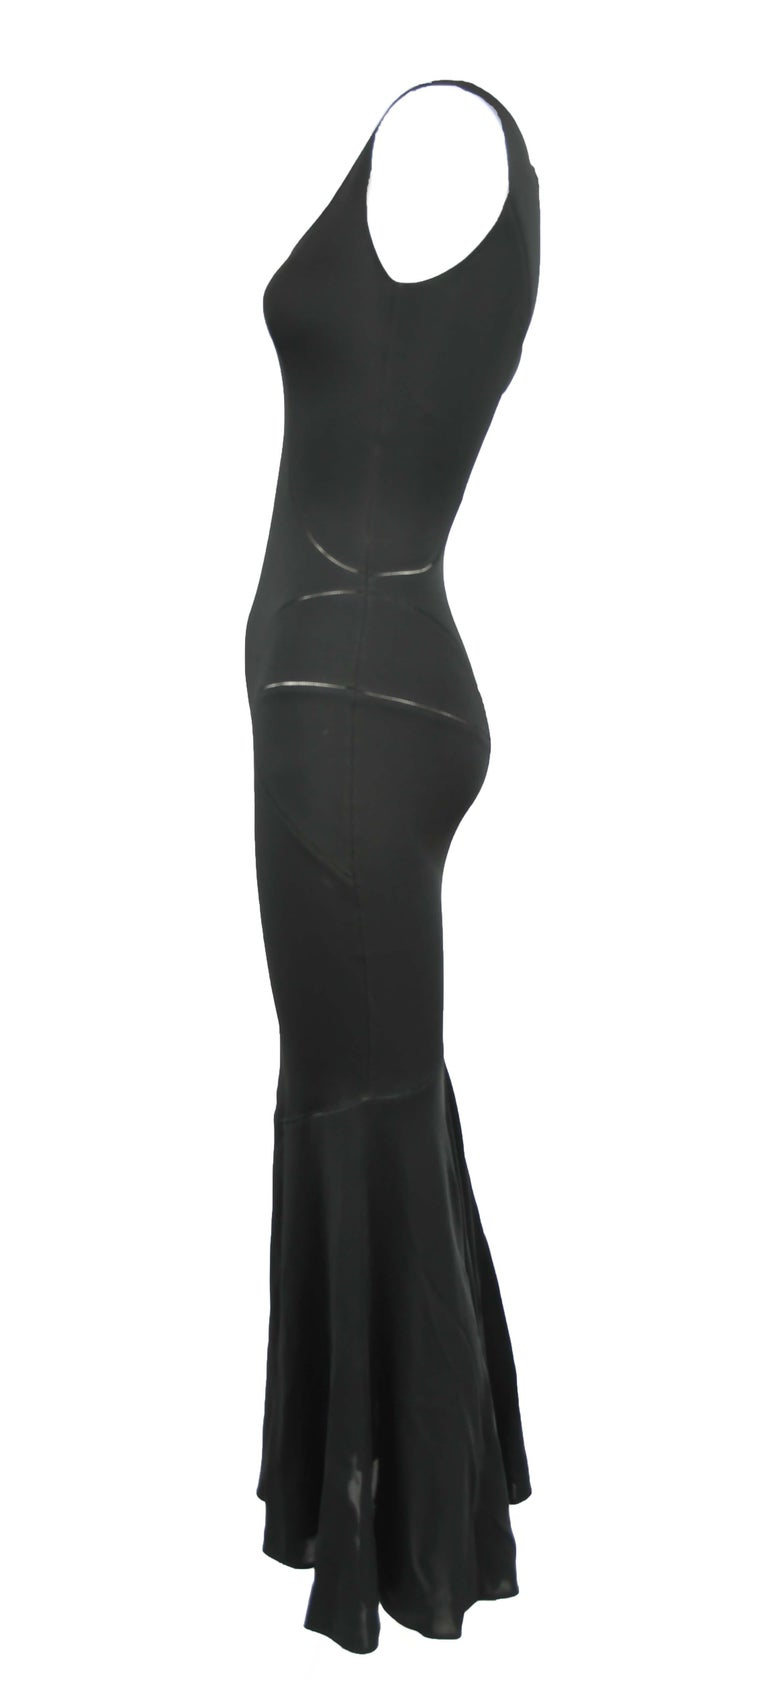 Vintage Alaia Black Tea Length Gown - Size S In Excellent Condition For Sale In Newport, RI